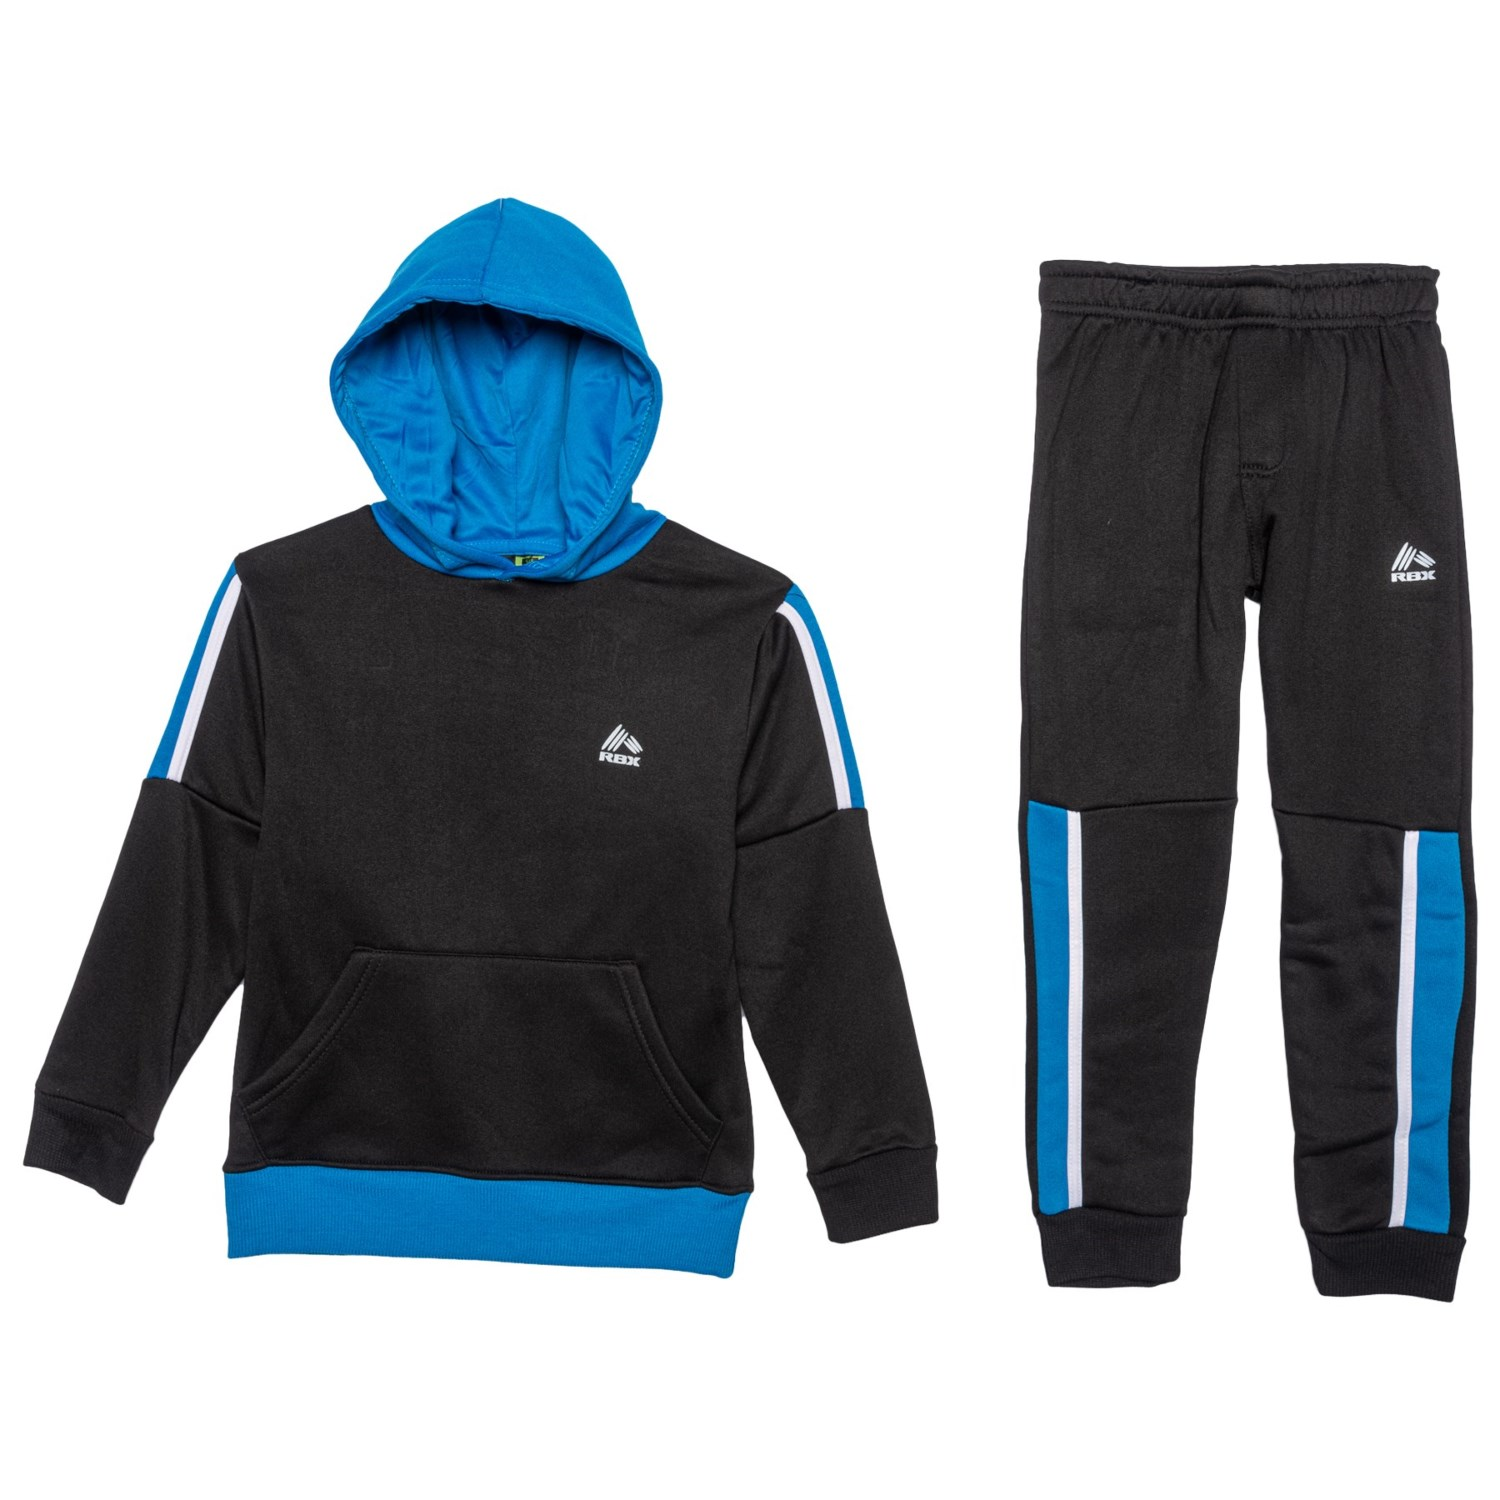 RBX Boys Pullover Fleece Hoodie Clothing, Shoes & Jewelry Active Hoodies